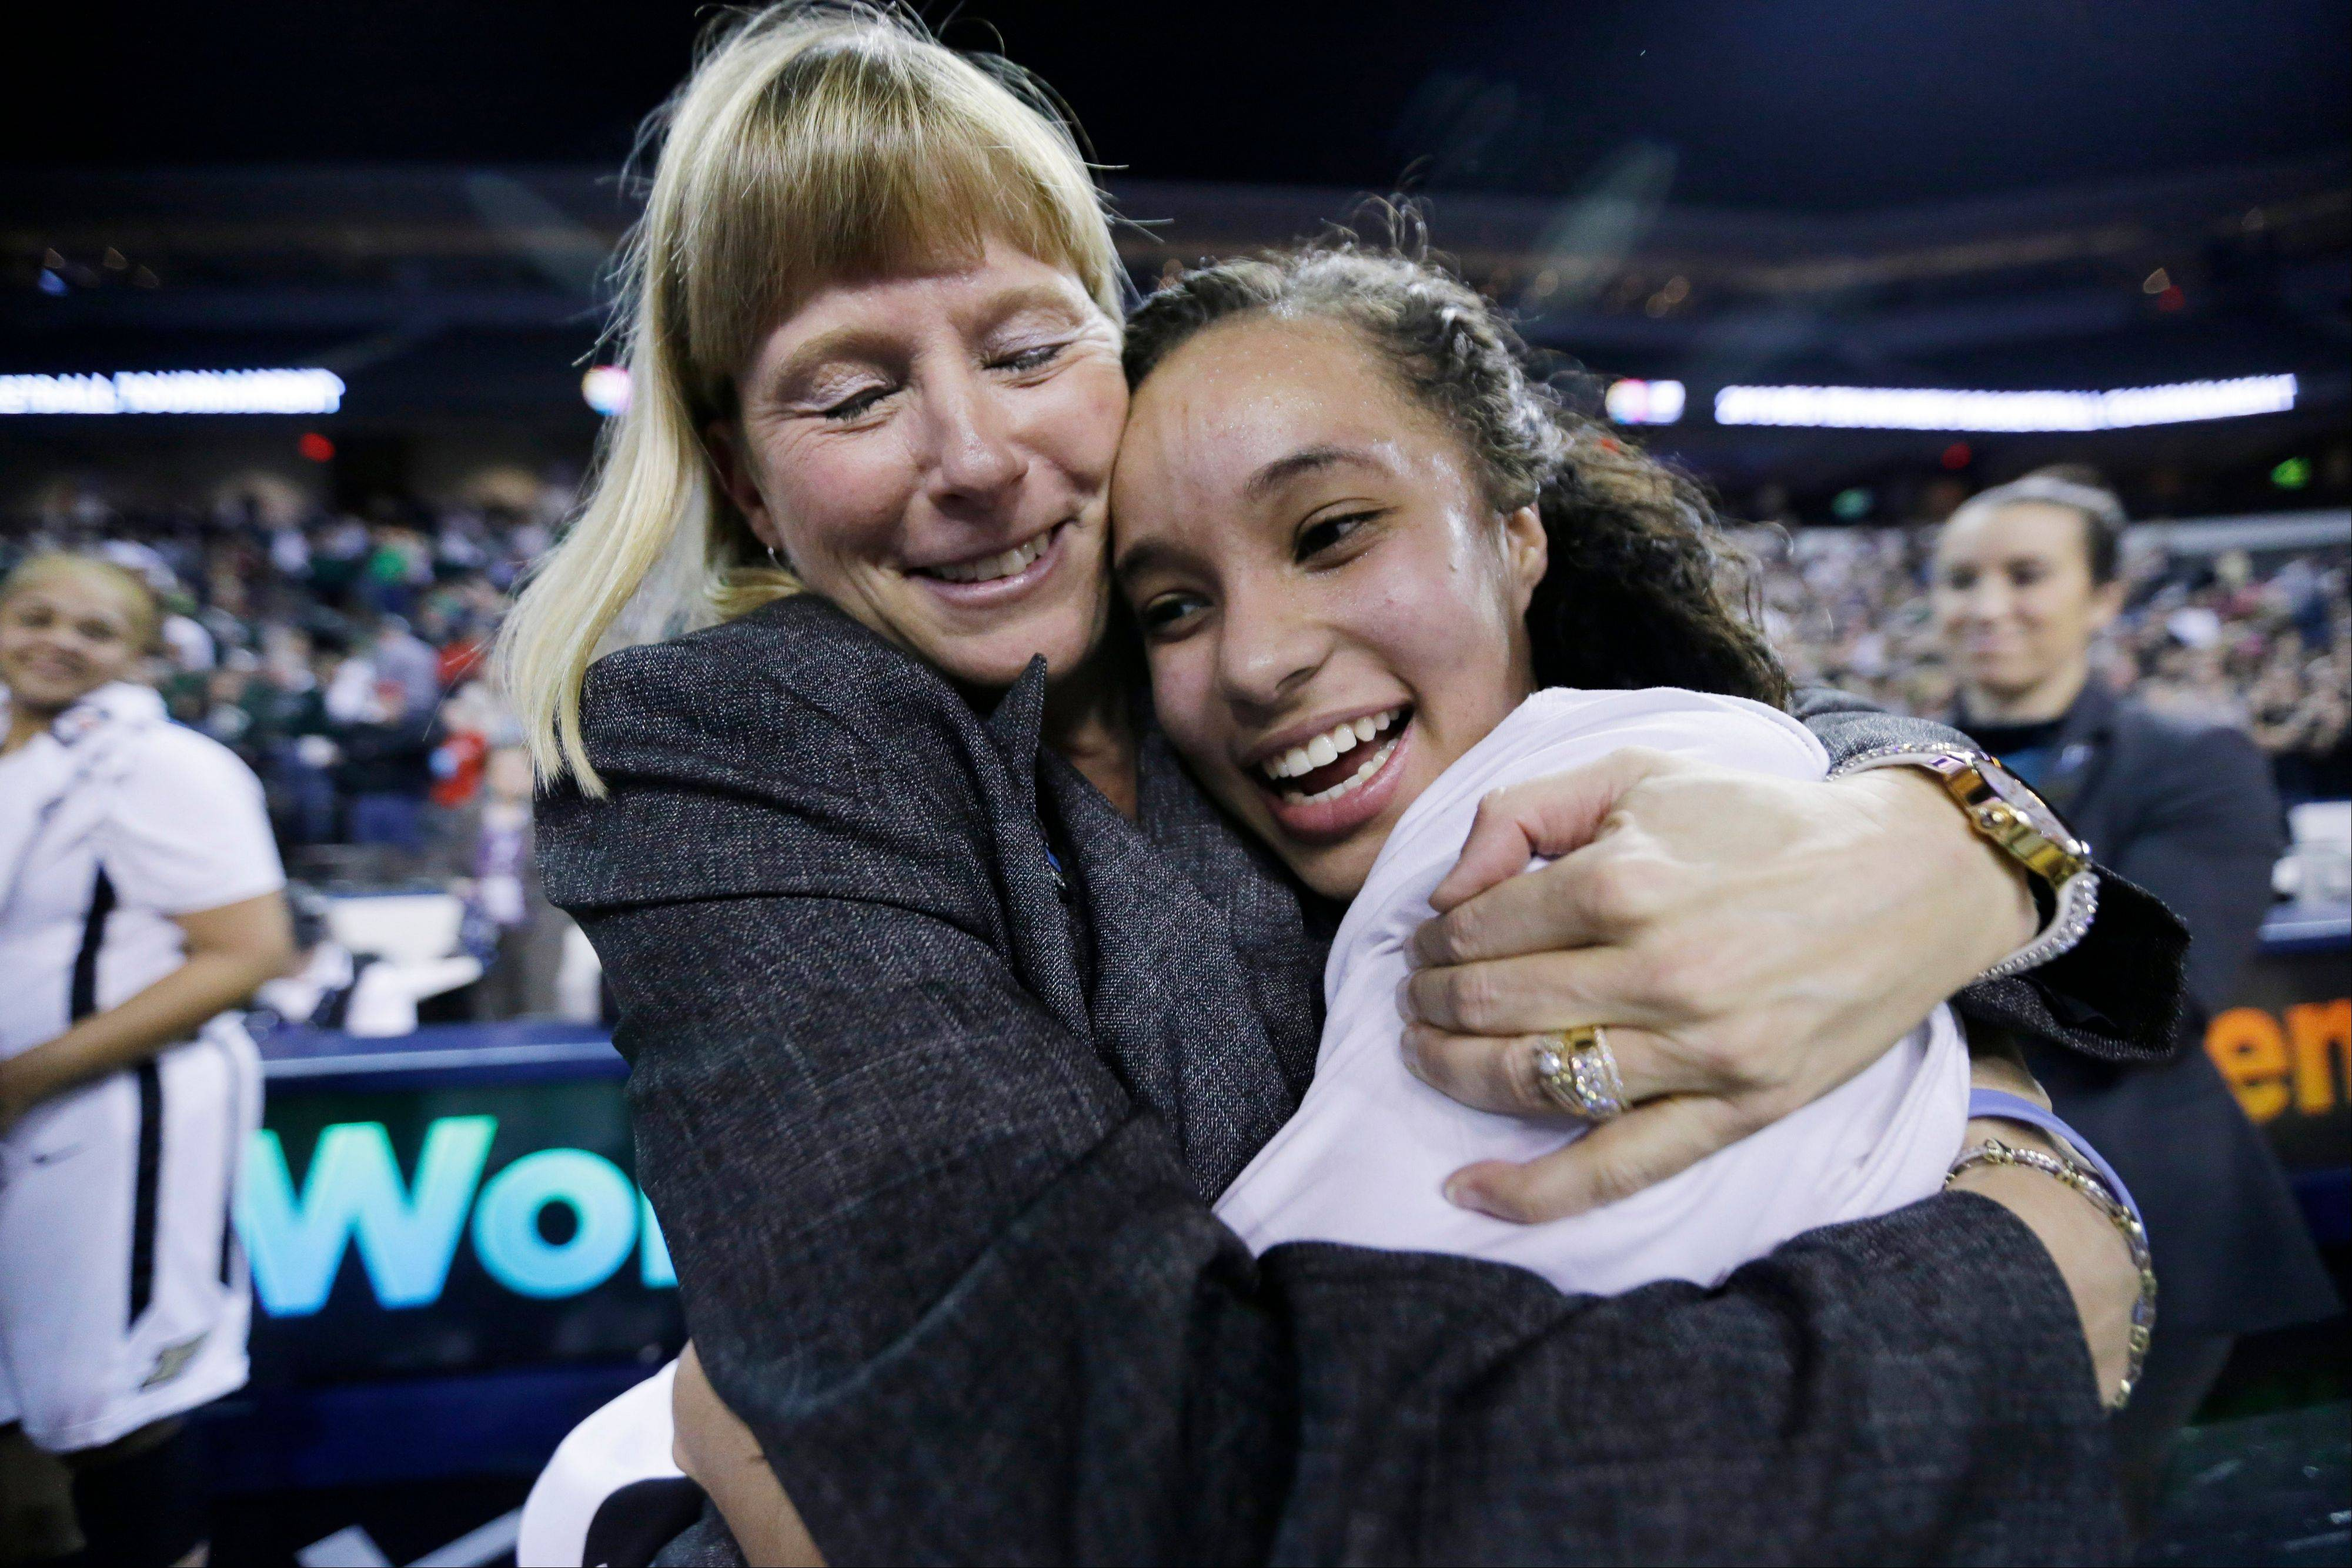 Purdue head coach Sharon Versyp, left, celebrates with guard KK Houser after Purdue defeated Michigan State 62-47 in the Big Ten women's basketball title game at Sears Centre in Hoffman Estates.